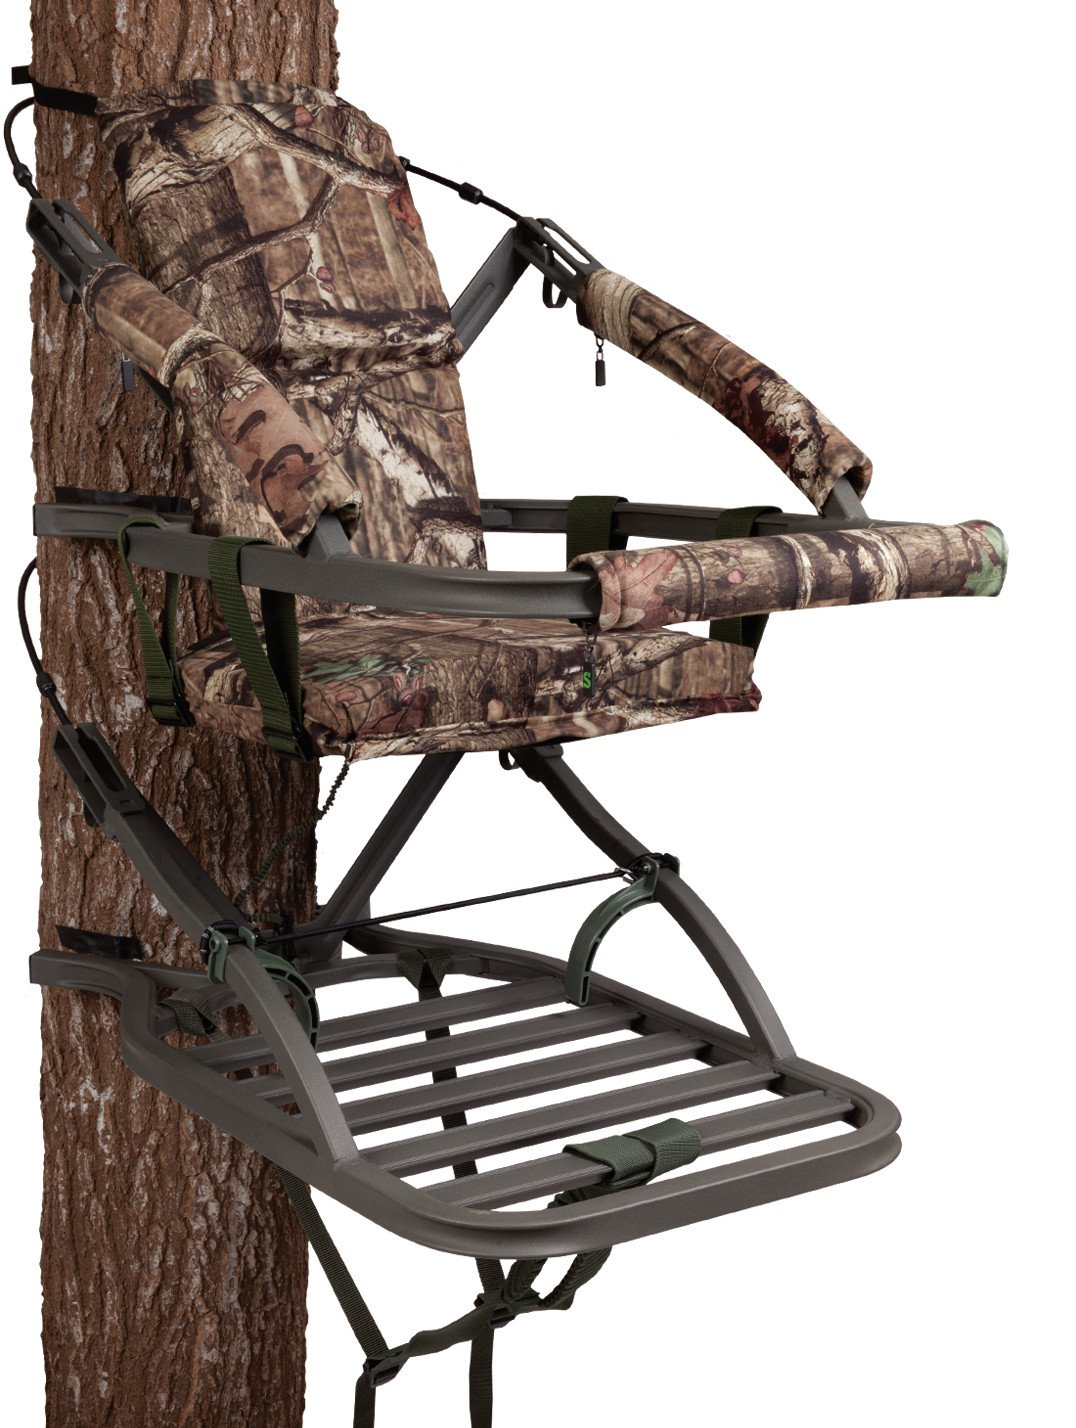 Top 10 Best Climbing Tree Stand 2020 Reviews For The Money 8